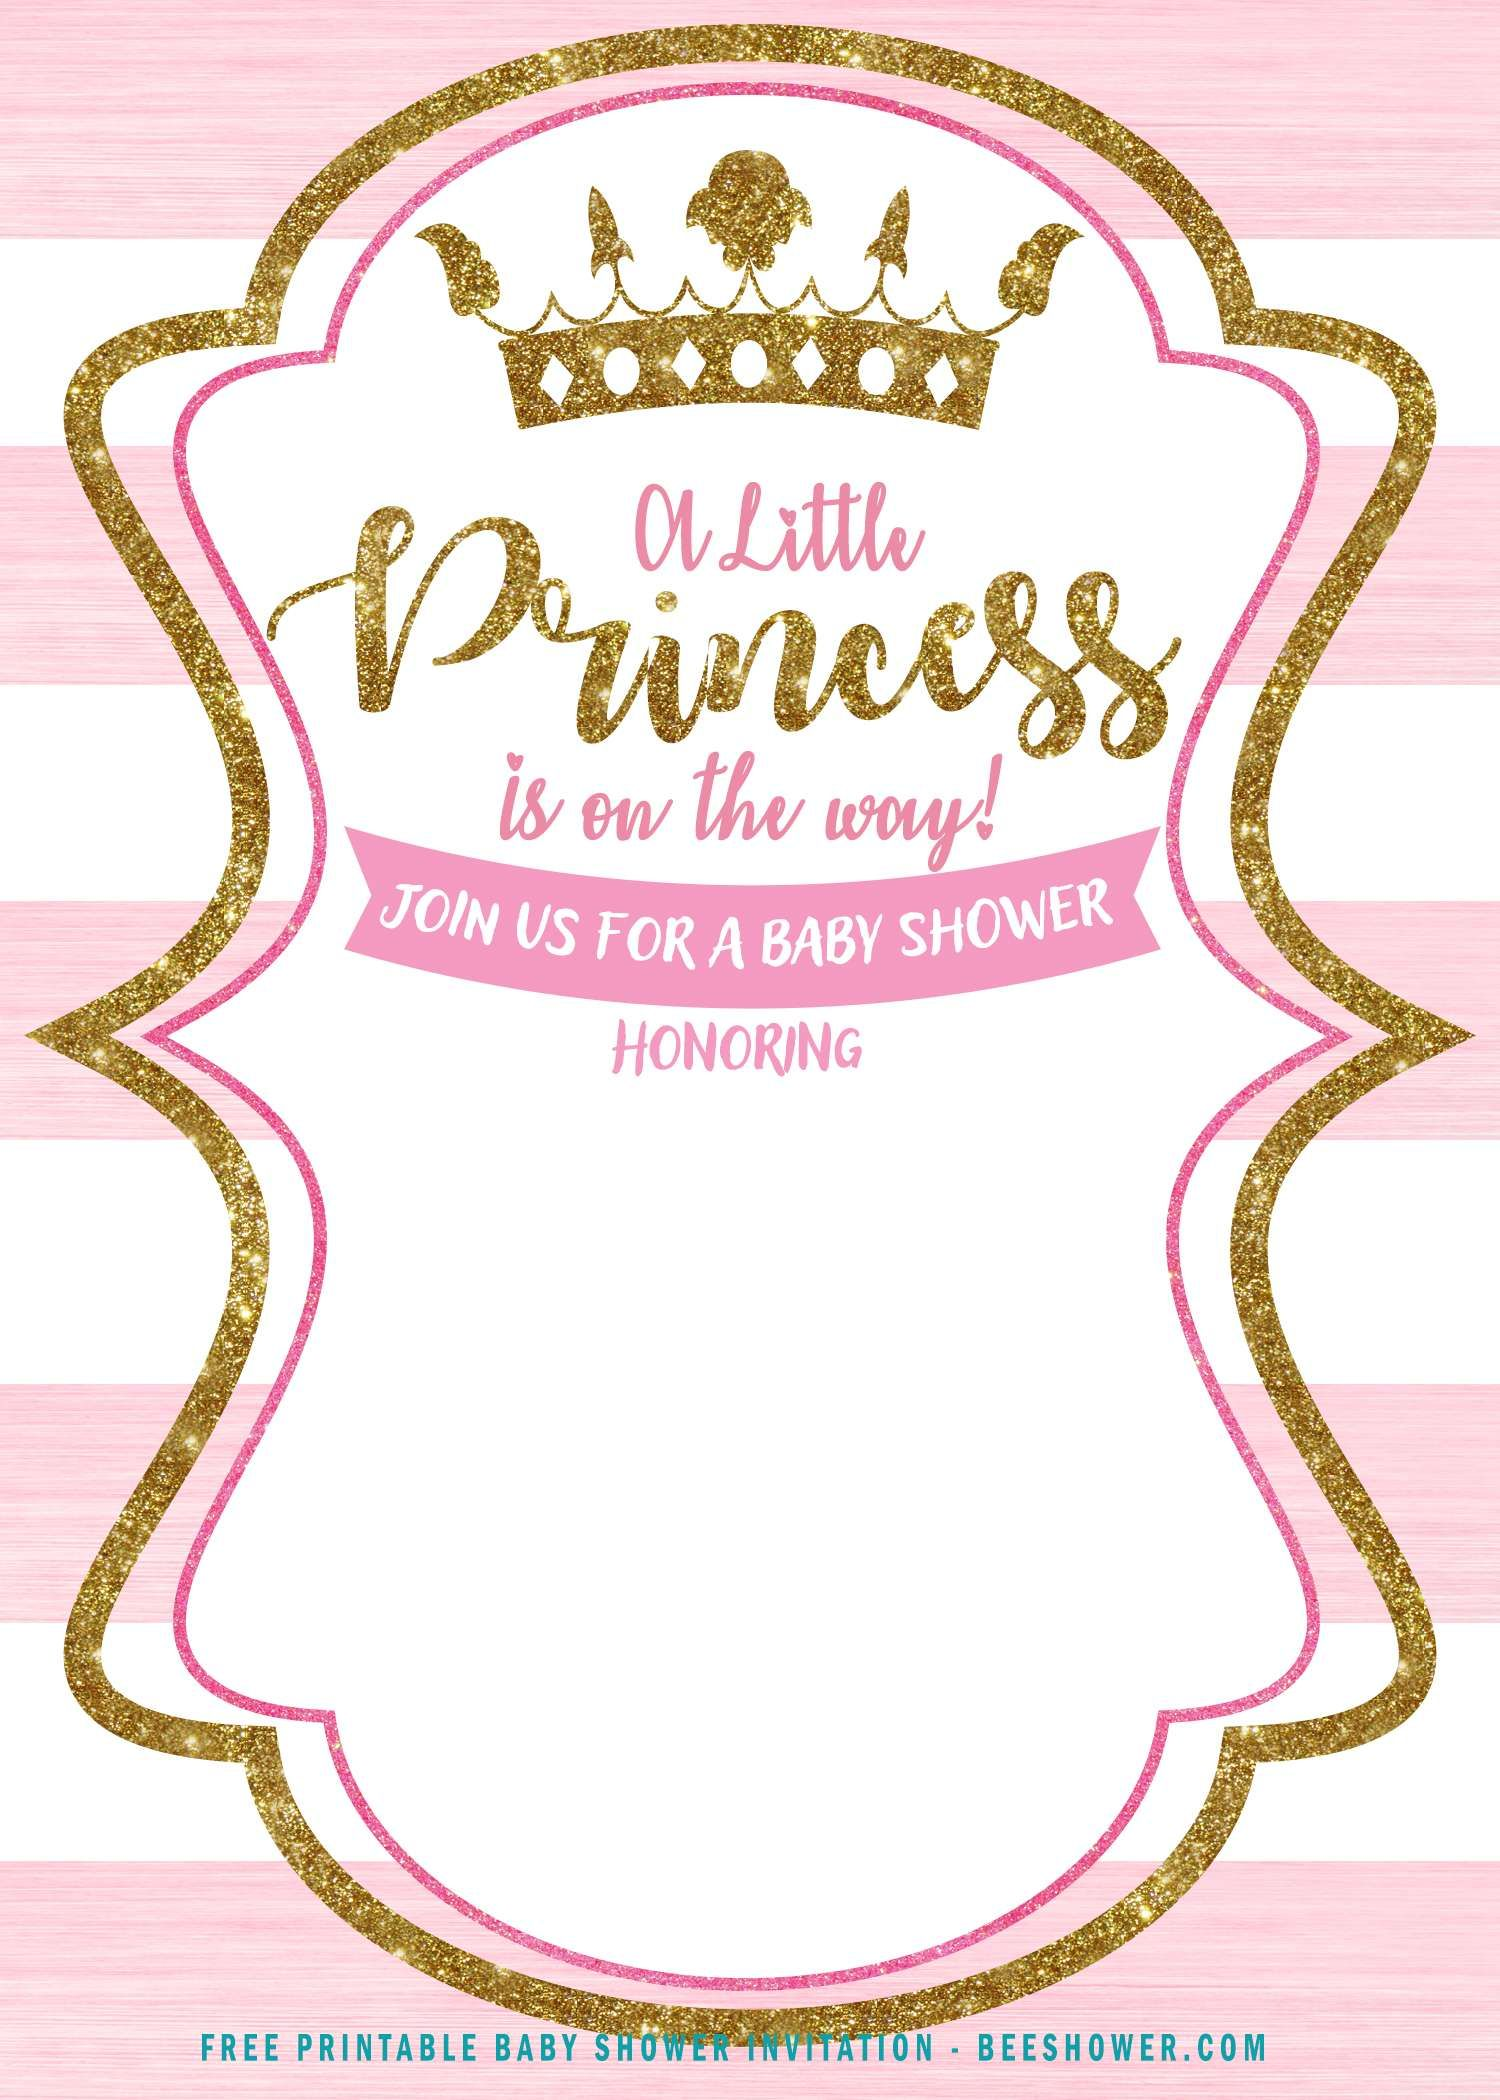 Free Pink And Gold Princess Baby Shower Invitation Free Pr Princess Baby Shower Invitations Free Princess Baby Shower Invitation Free Baby Shower Invitations